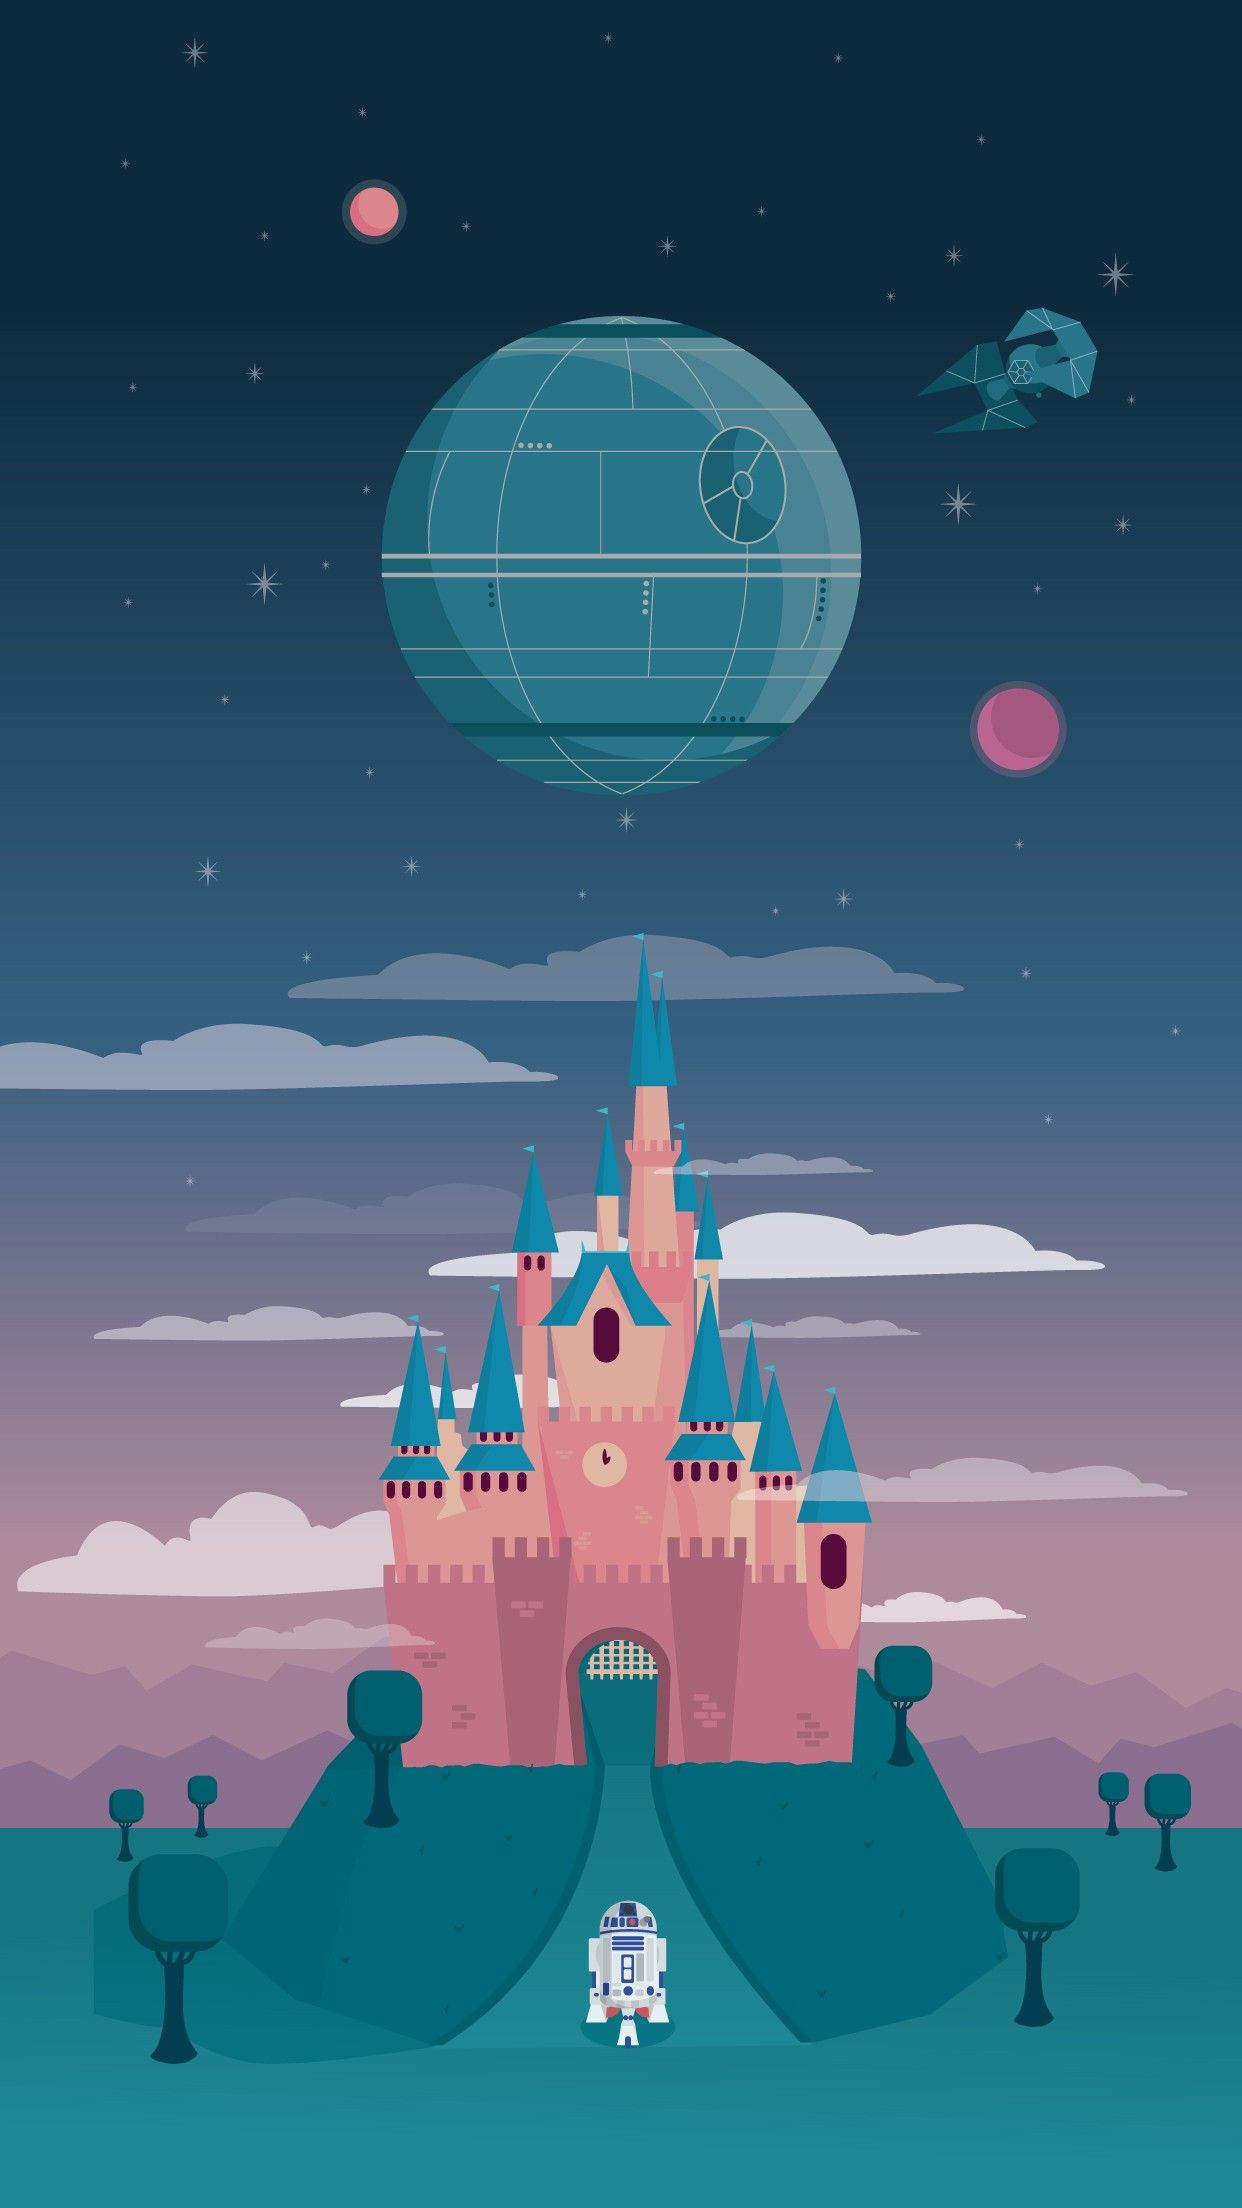 Wallpaper Iphone 6 Disney Pesquisa Google W A L L P A P E R